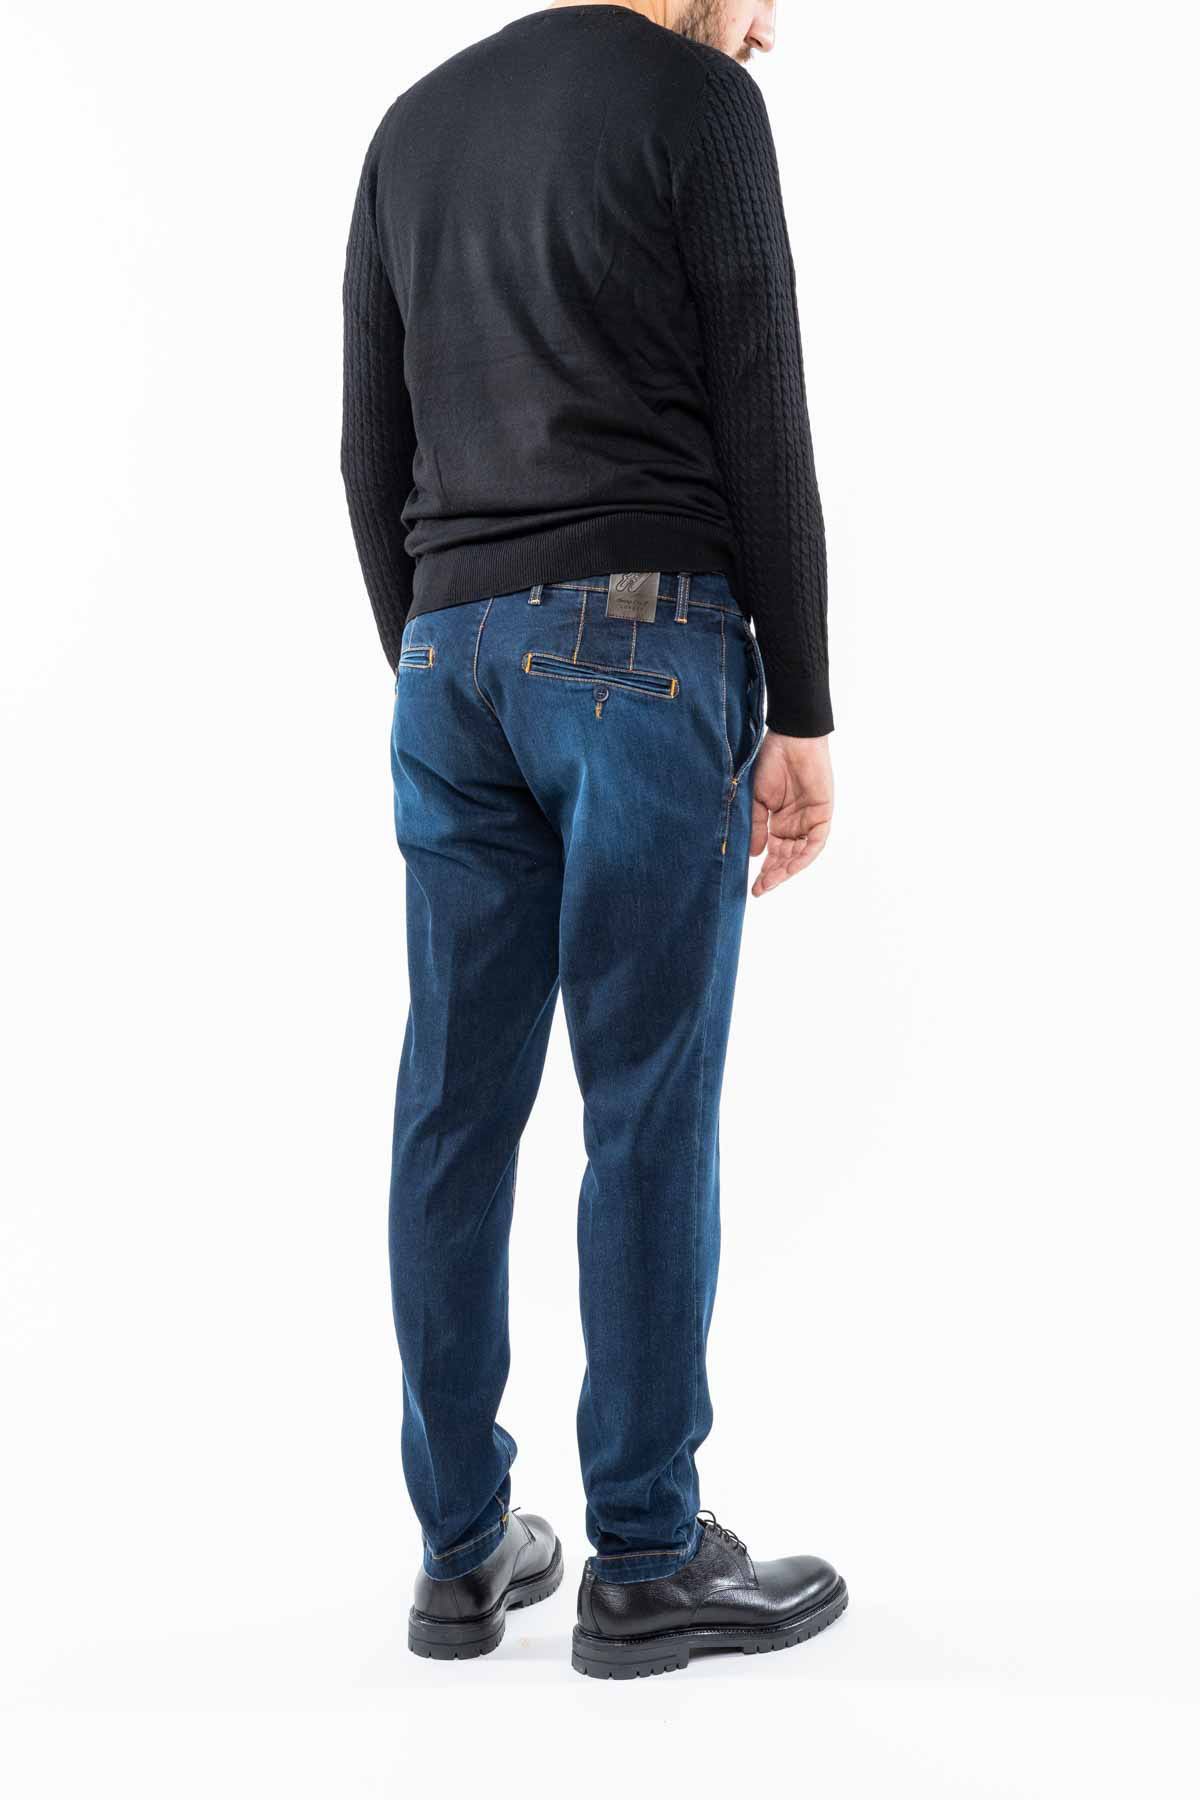 jeans,scuro